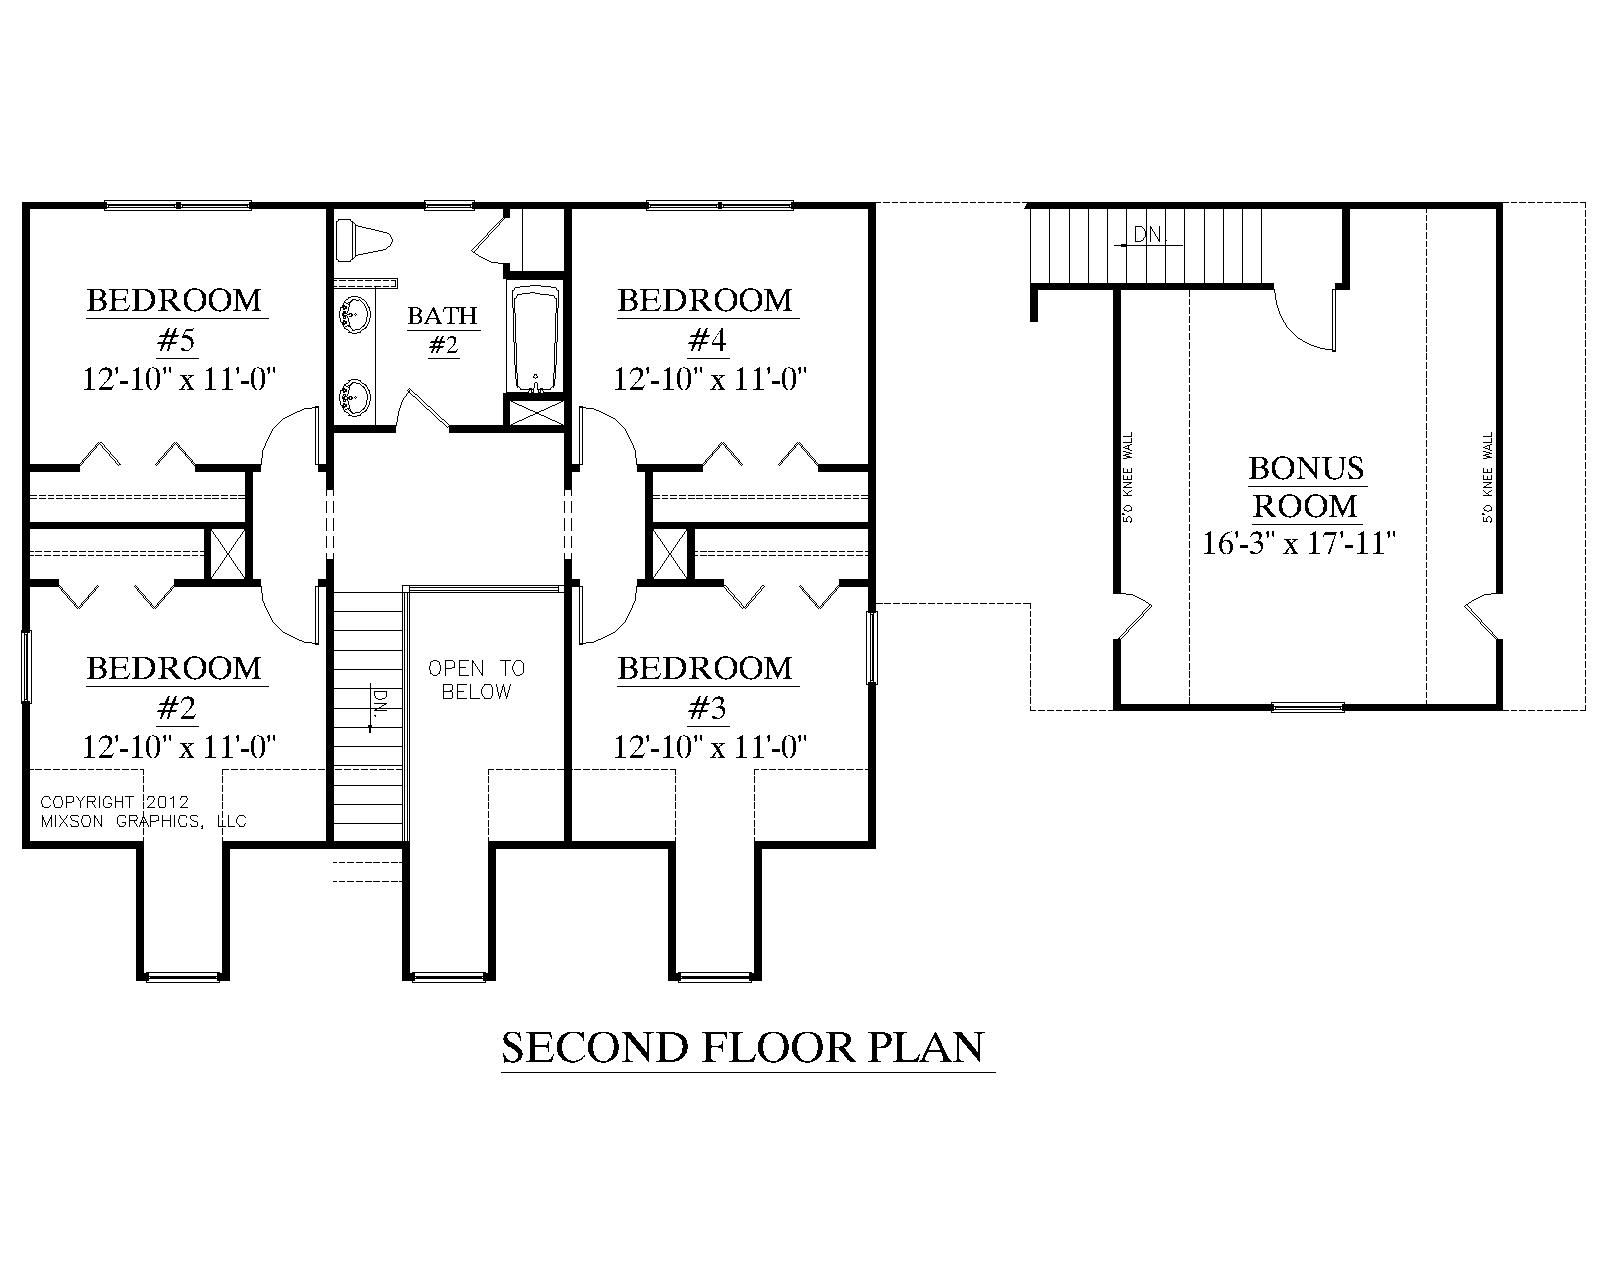 House plan 2341 a montgomery a second floor plan for Traditional floor plans